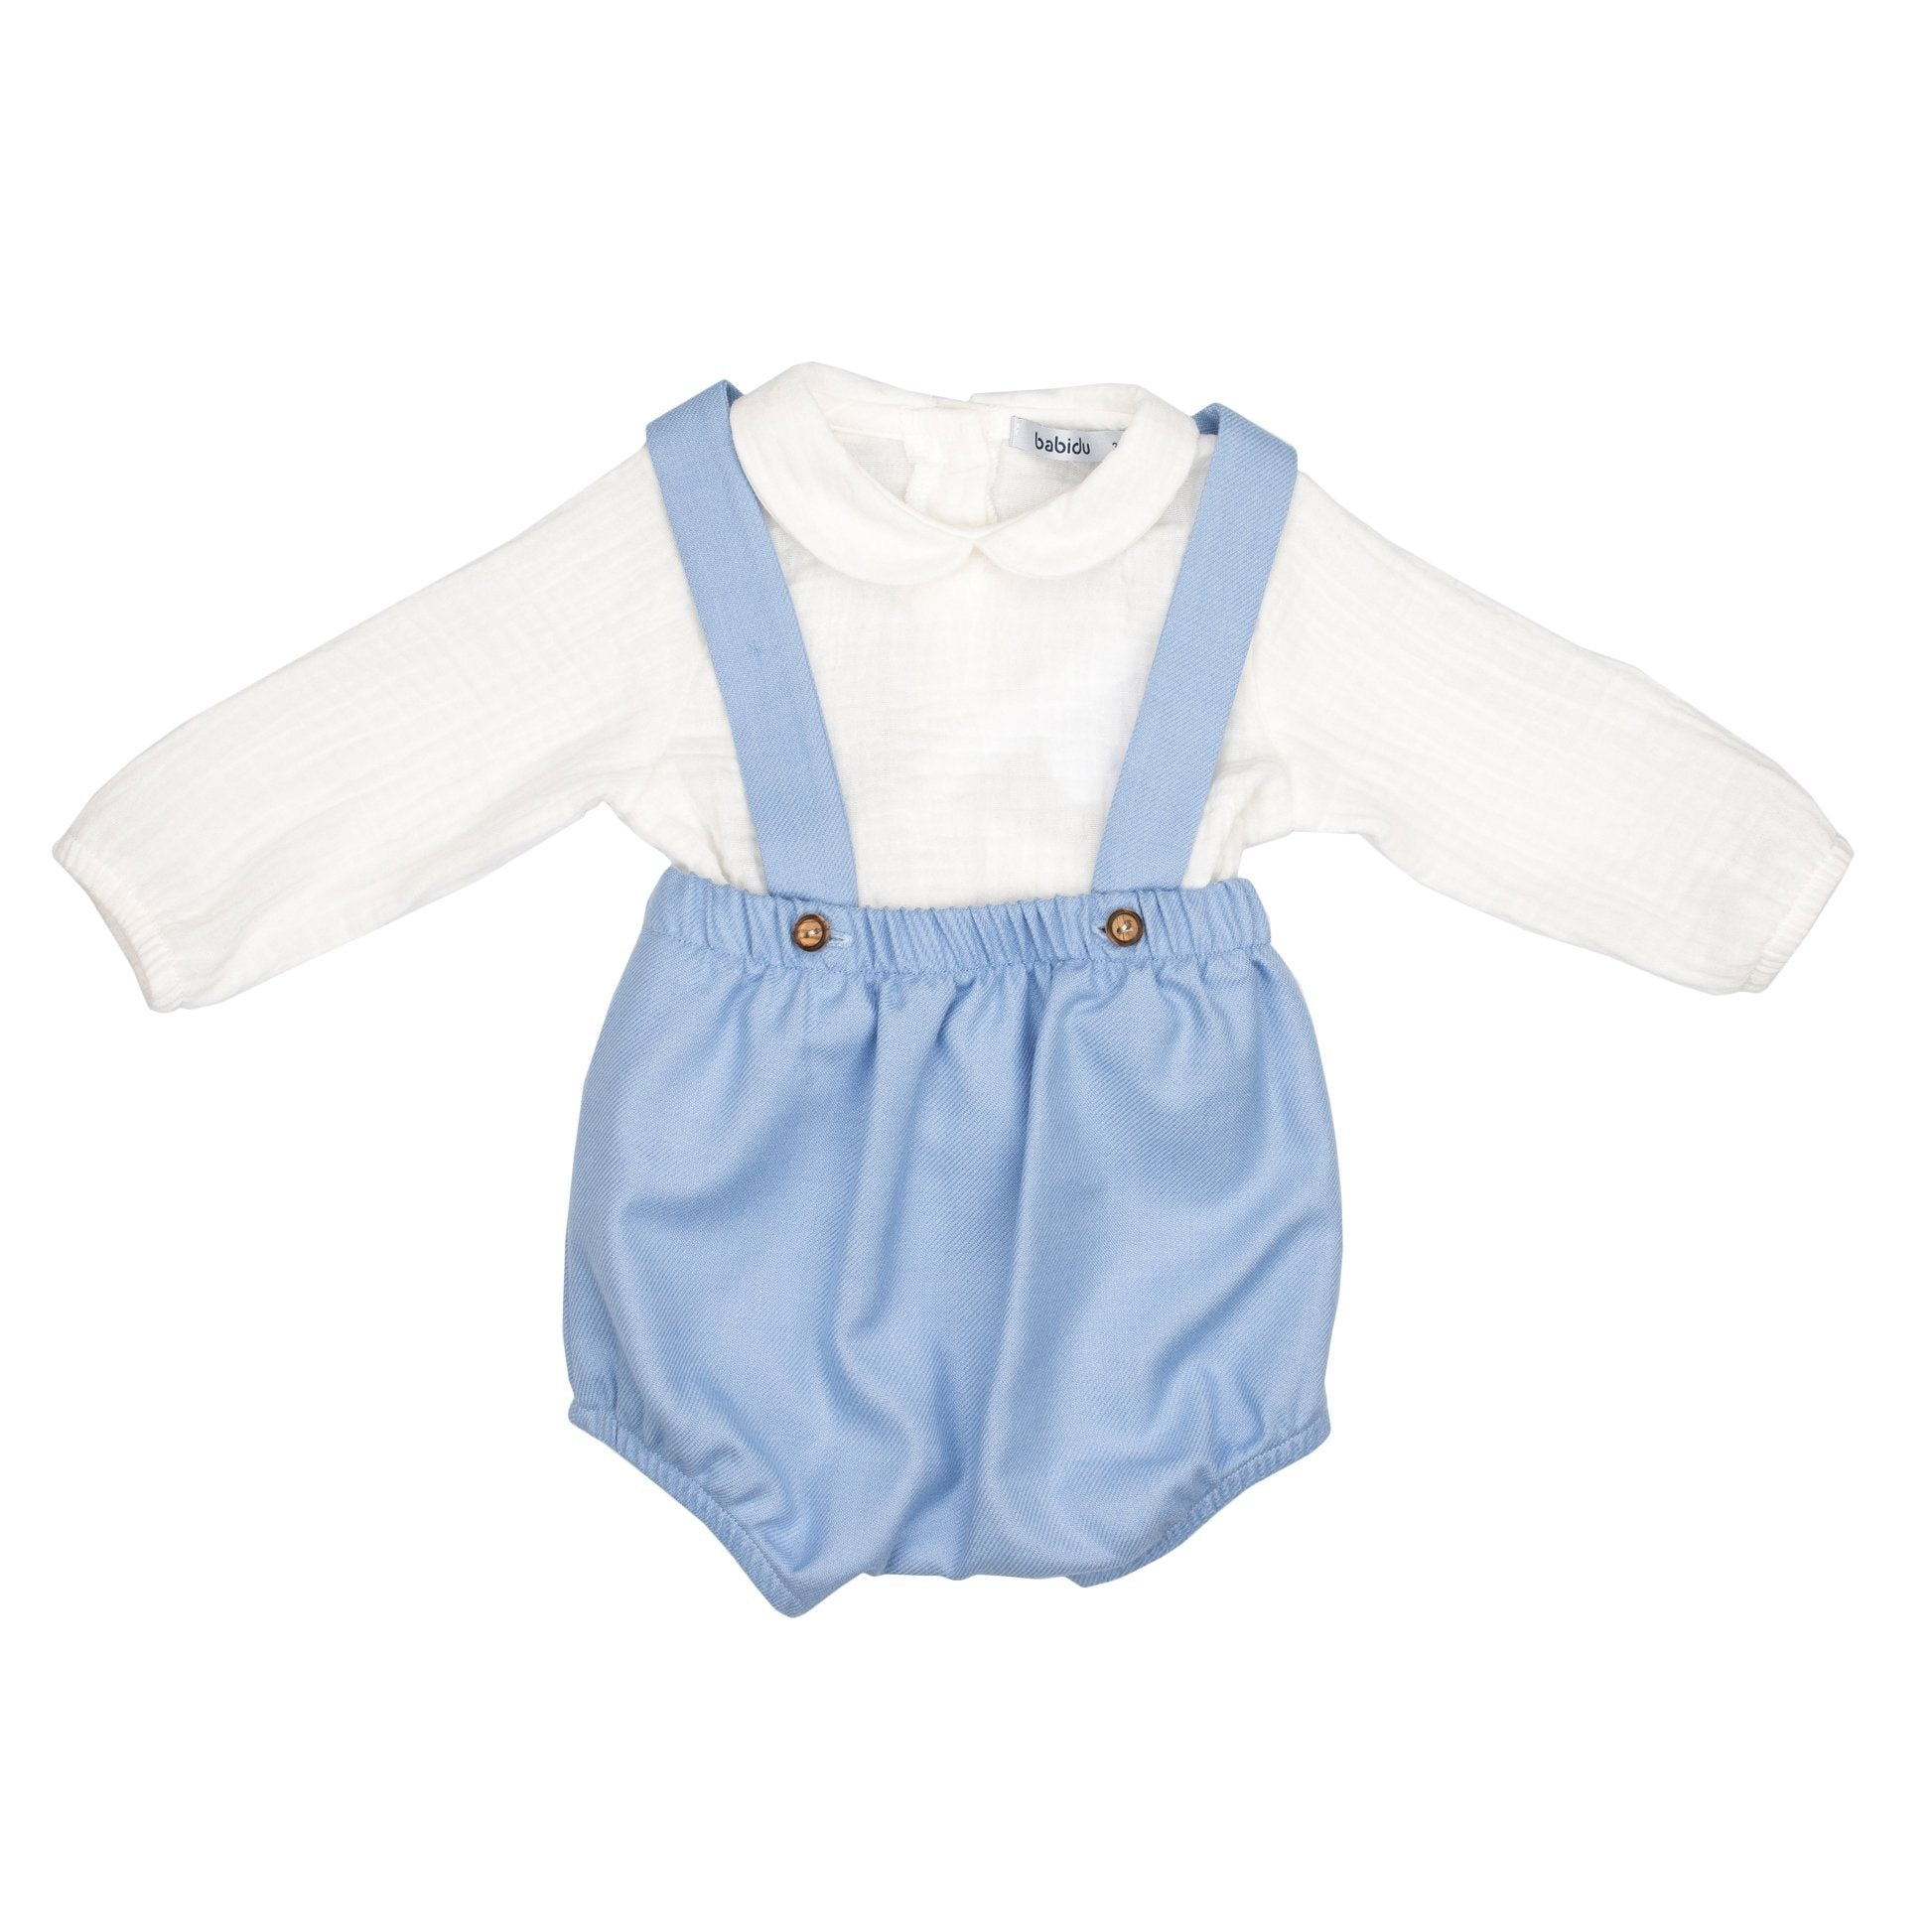 Babidu Ivory Shirt & Blue Cotton Shorts with Braces | Millie and John